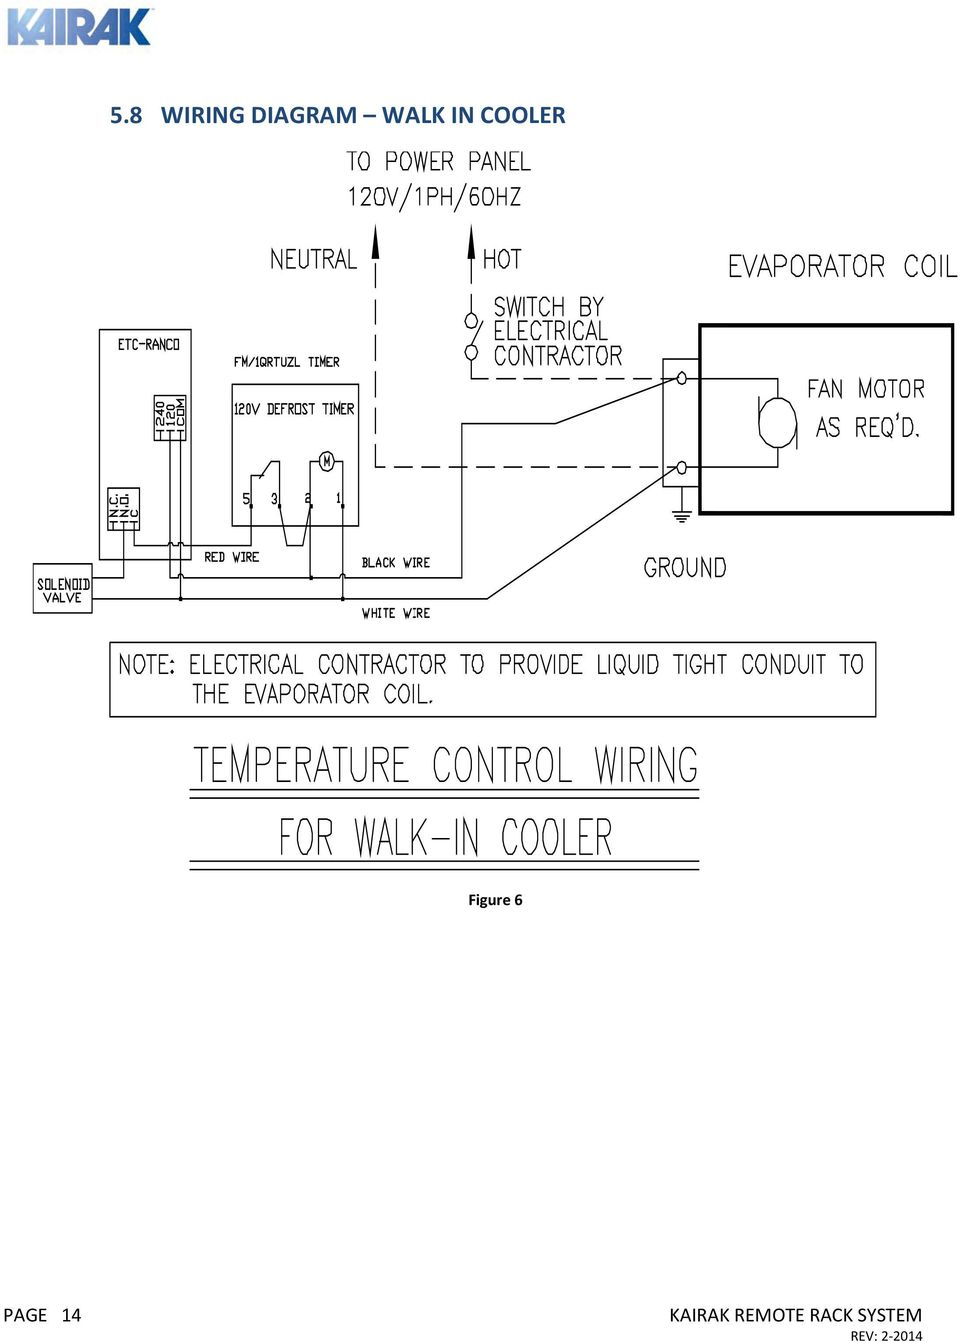 hight resolution of  basic remote rack system owners manual installation operations on commercial air handler diagram